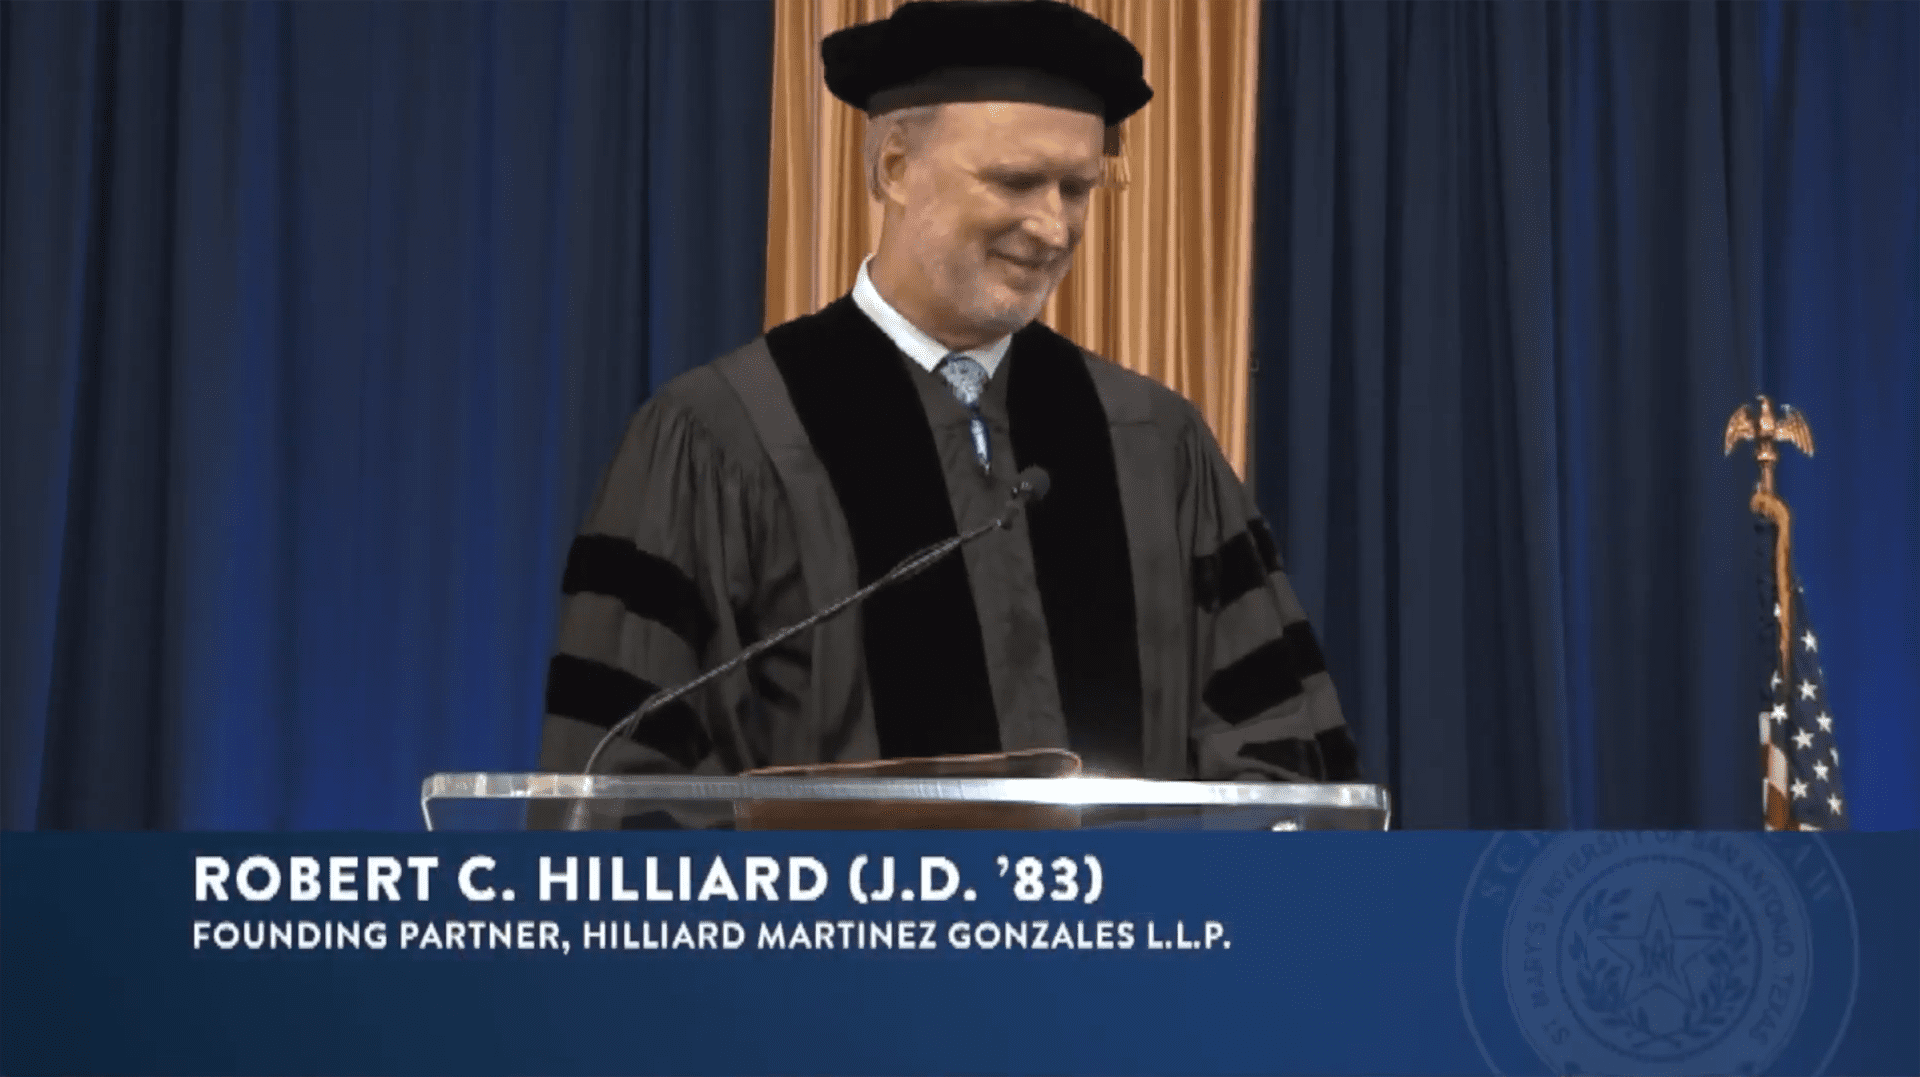 Hilliard Gives Keynote Speech for St. Mary's University